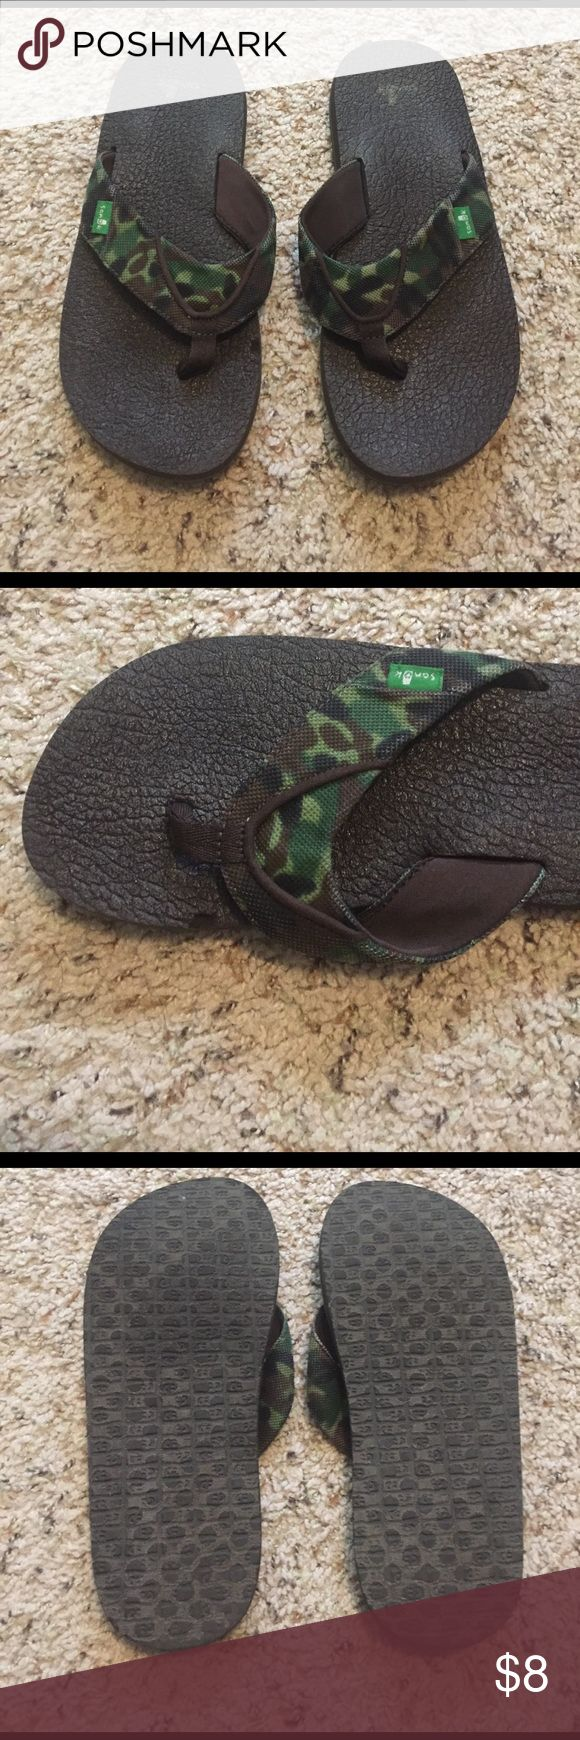 Boys camo Sanuk flip flops size 5/6 Boys Sanuk camo flip flops. Size 5/6, I think they are youth sizes. In good condition, only worn a few times. There is a small chunk taken out of the side but it is not that noticeable when on. Super comfy bottom! Sanuk Shoes Sandals & Flip Flops